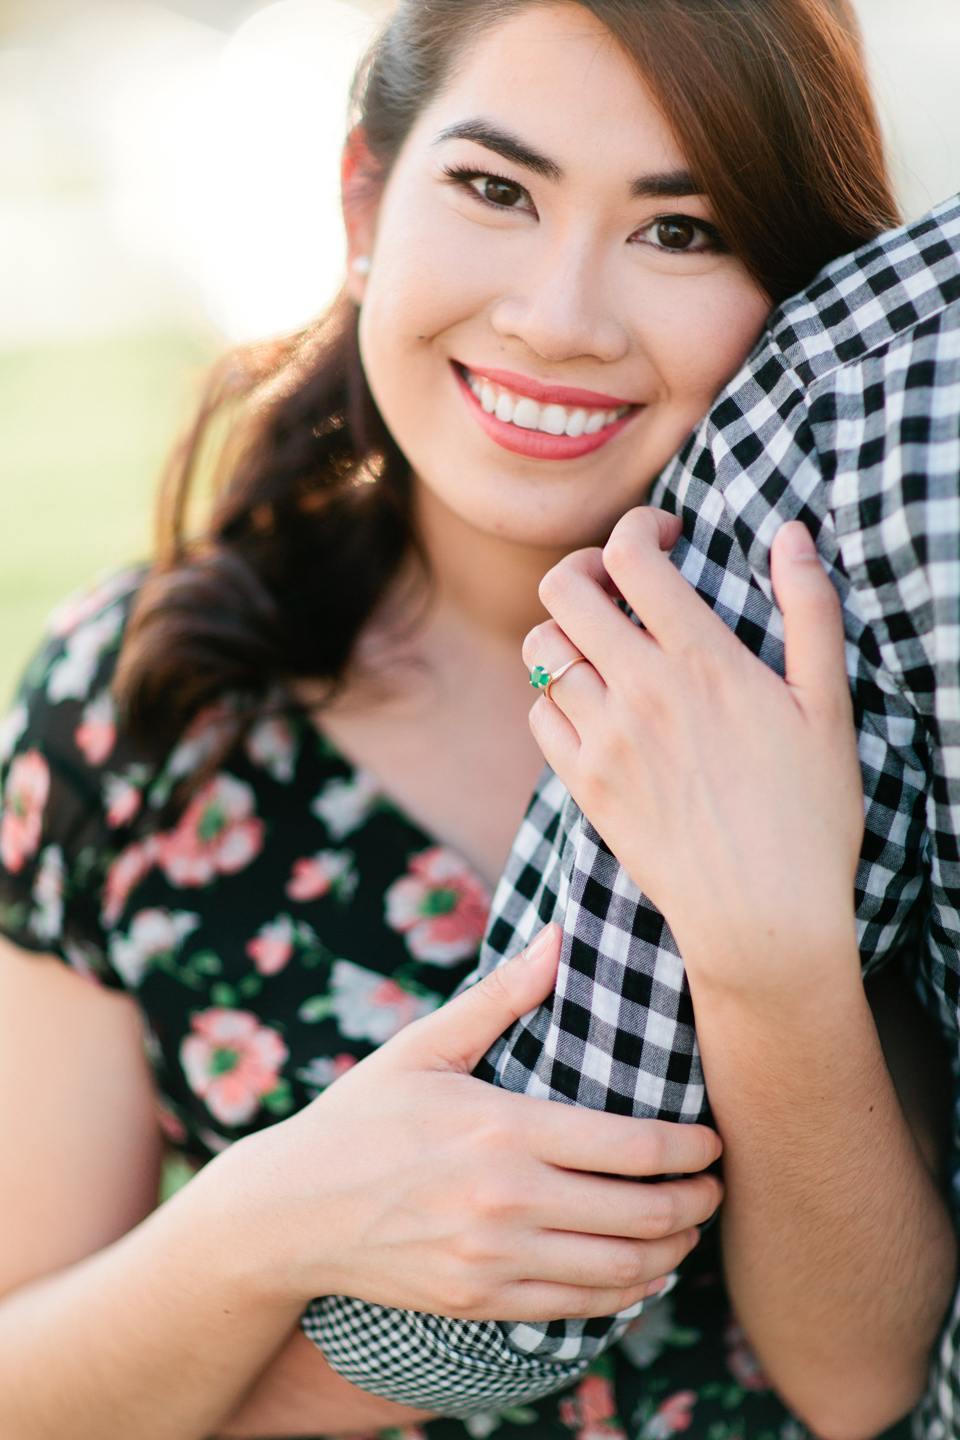 Image of a beautiful woman smiling while holding the arm of her fiance.  This engaged couple is at Curtis Hixon Waterfront Park in downtown Tampa, Florida.